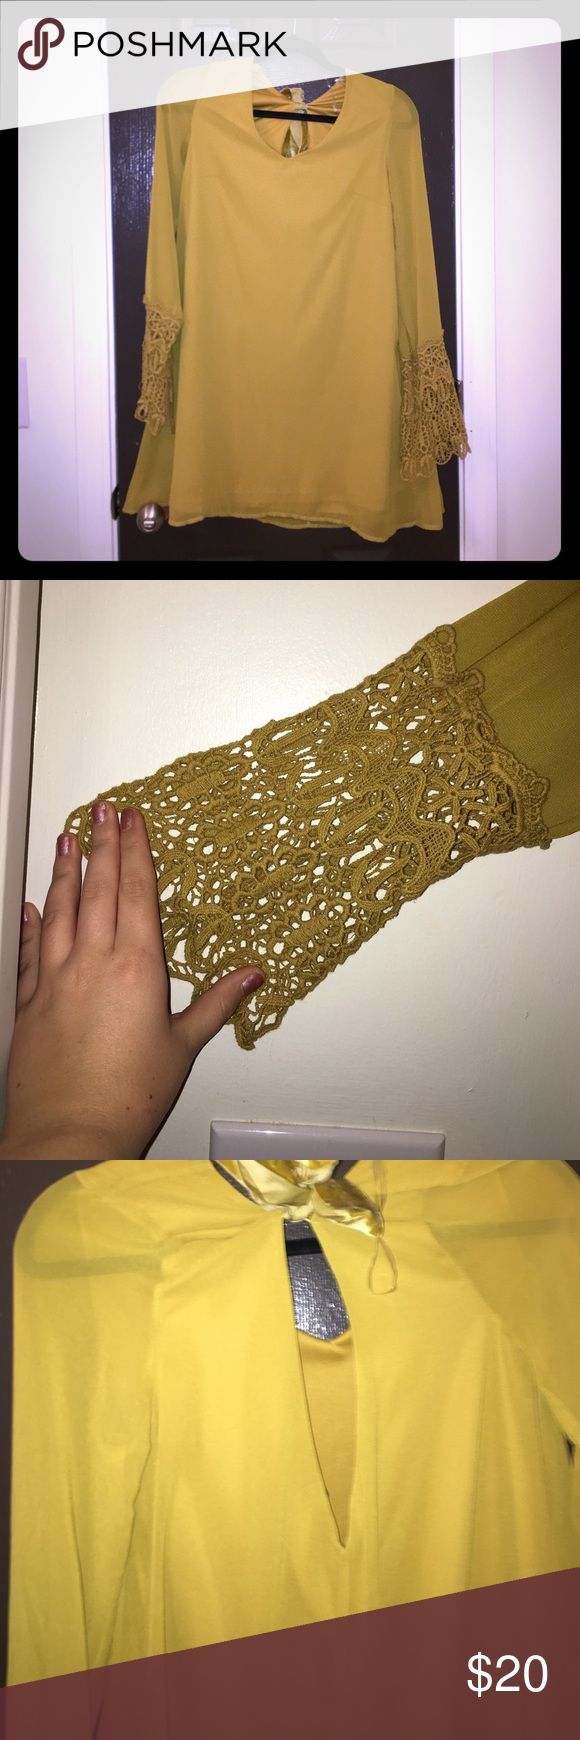 Mini mustard colored dress! This beautiful mustard colored dress is able to be dressed up or dressed down! It has such beautiful lace detailing on the sleeves and has a keyhole back with a velvet bow! Size small. Never worn umgee Dresses Mini